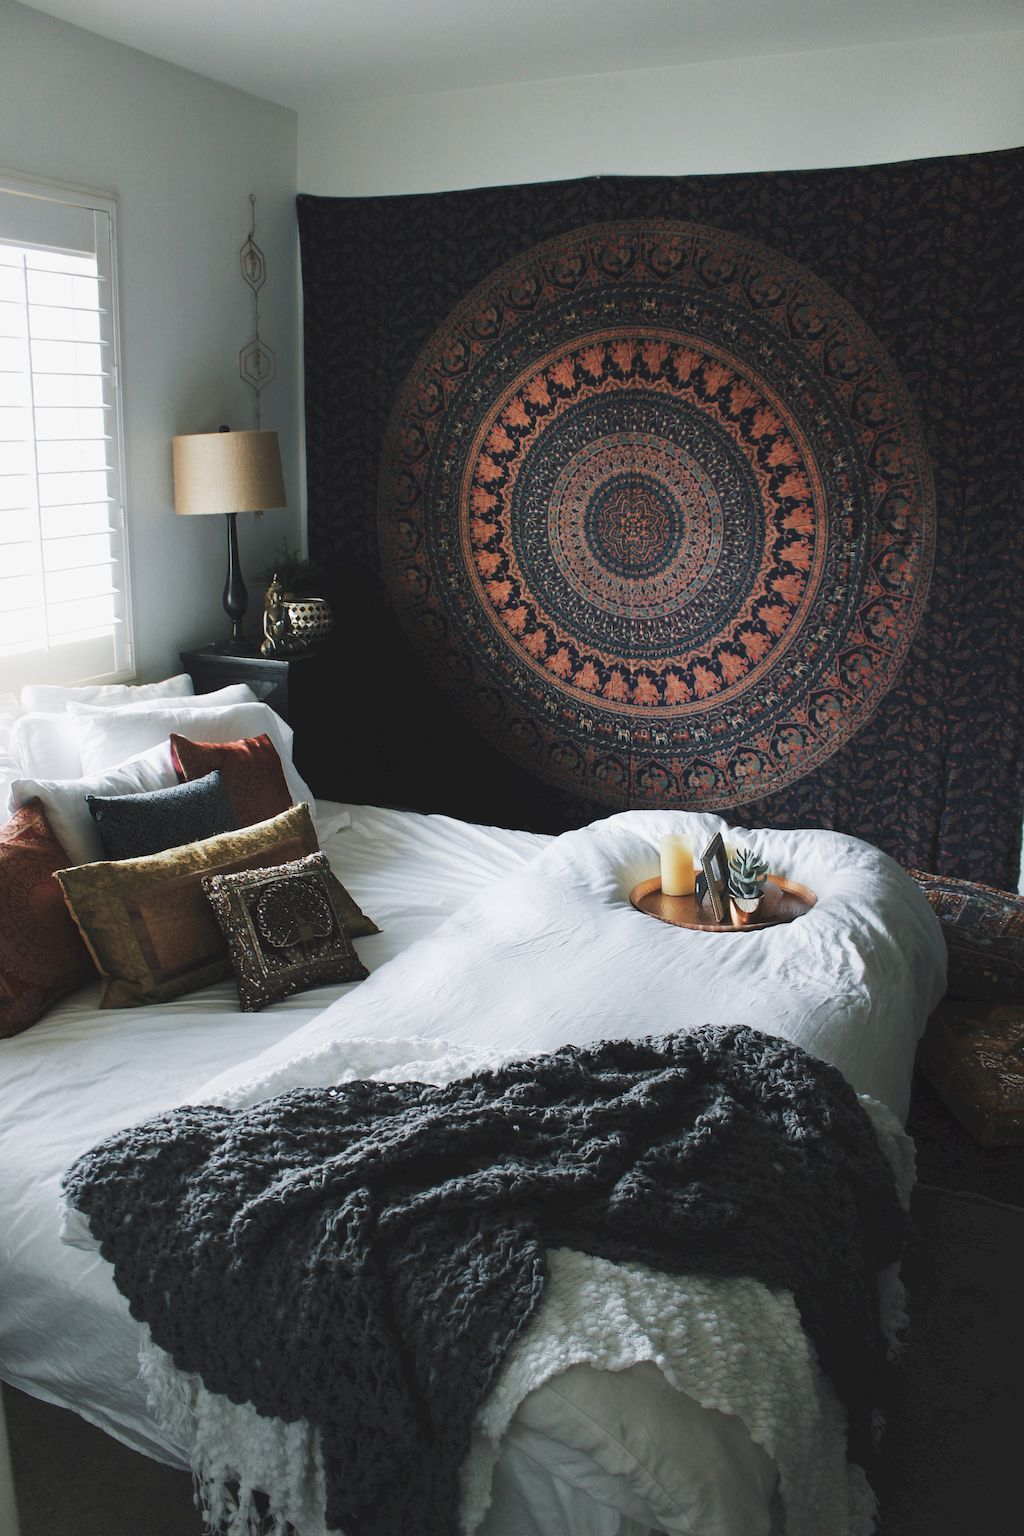 Adorable 85 Elegance Chic Bohemian Bedroom Design Ideas https://decorapatio.com/2017/06/16/85-elegance-chic-bohemian-bedroom-design-ideas/